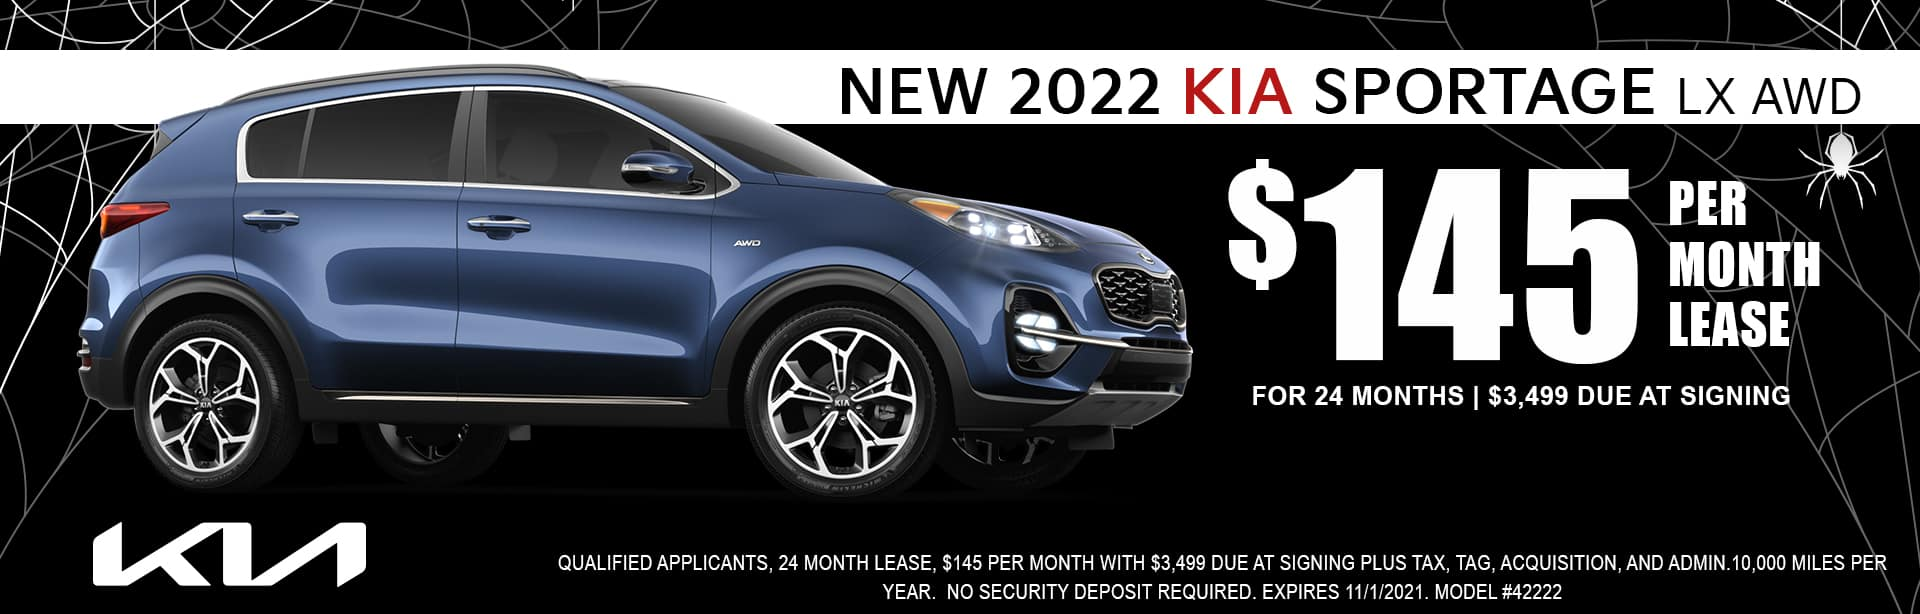 Banners_1920x614_Sportage